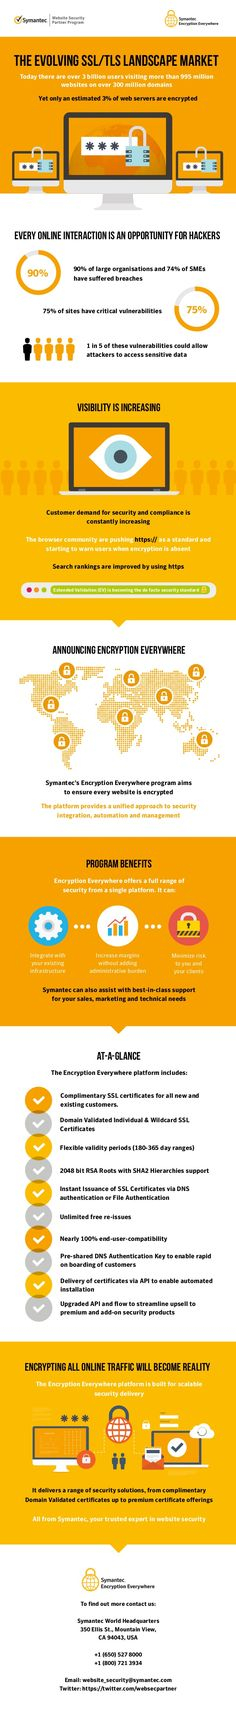 #Infographic - @symantec Explains the importance of #SSL Certificate and #Encryption Everywhere platform. #Security #Infosec